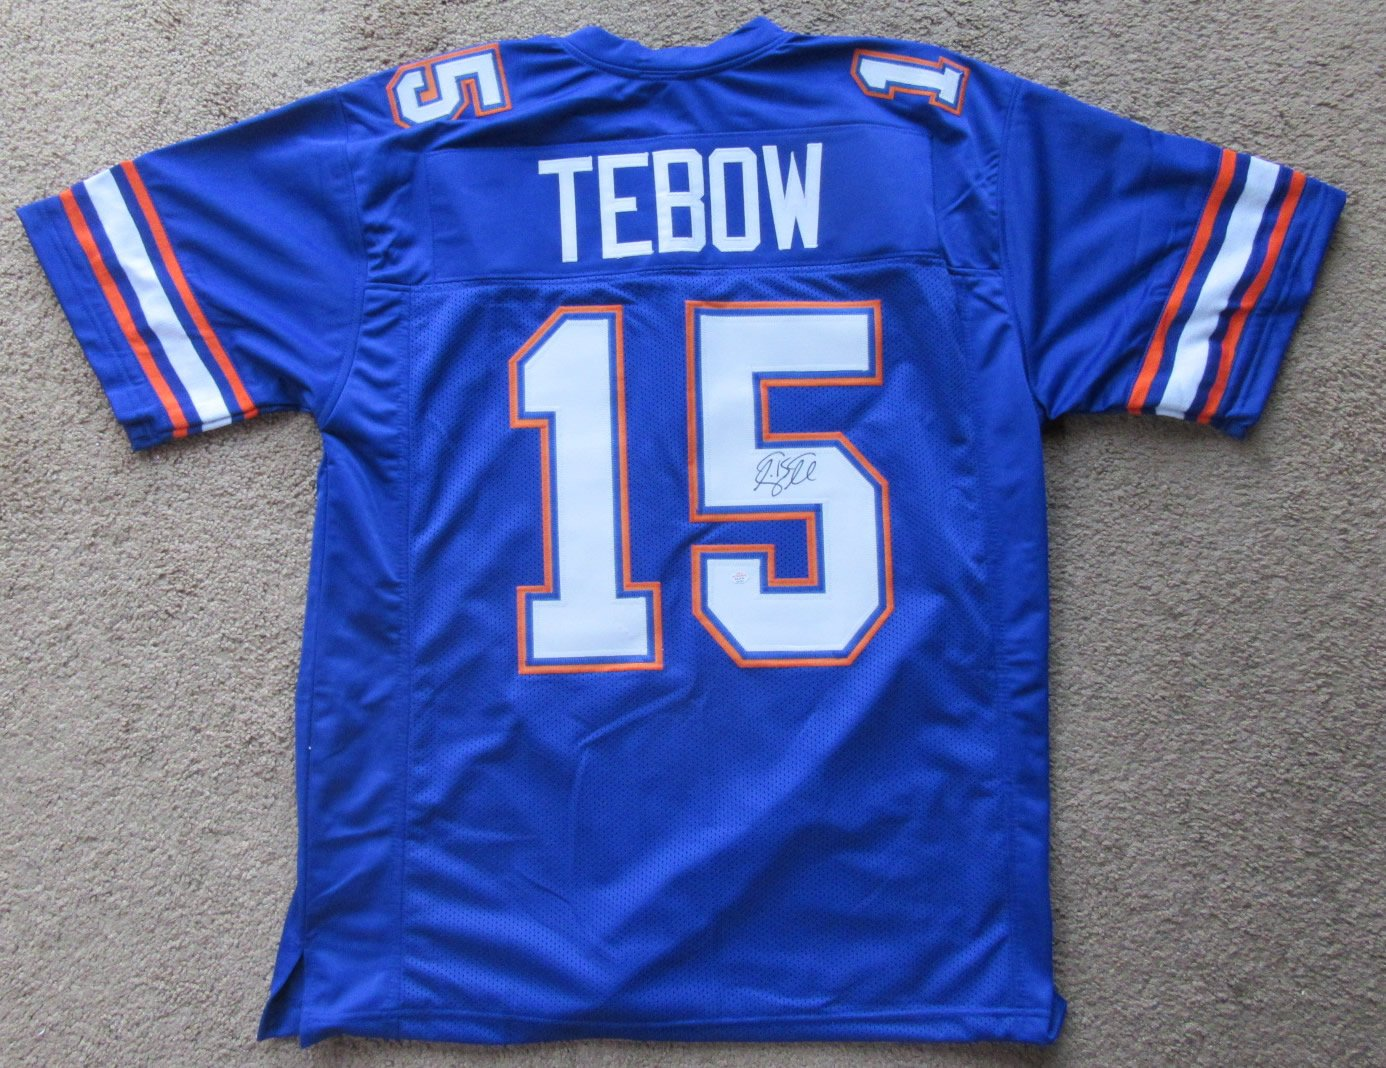 cheaper fcd62 ab604 Tim Tebow Florida Gators Signed Autographed Football Jersey ...